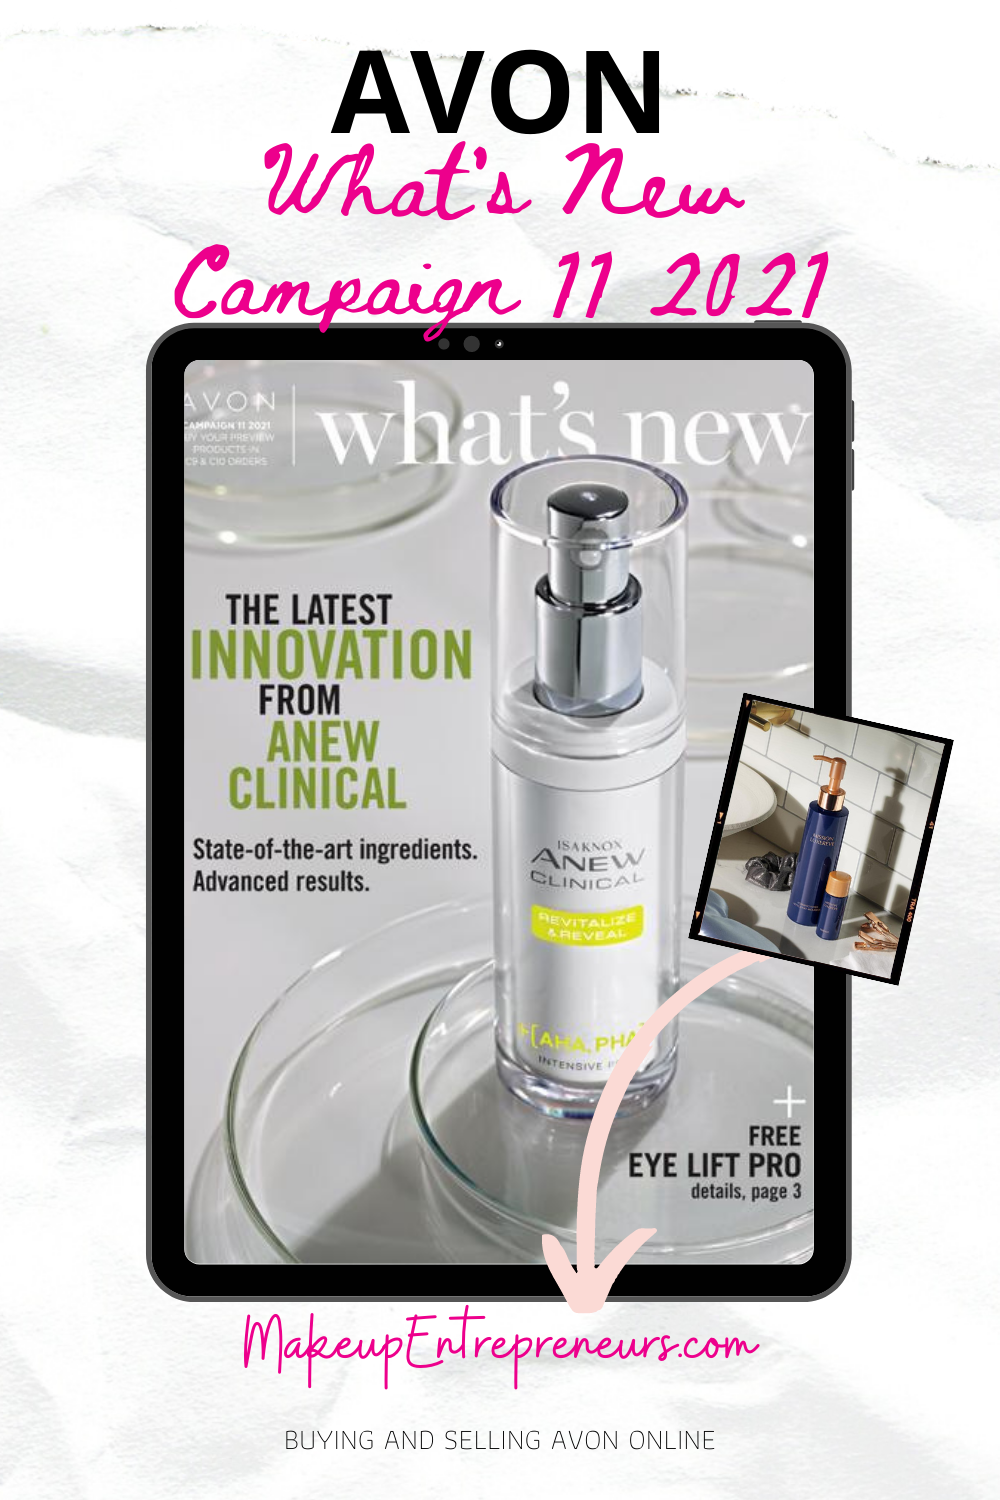 Avon What's New Campaign 11 2021